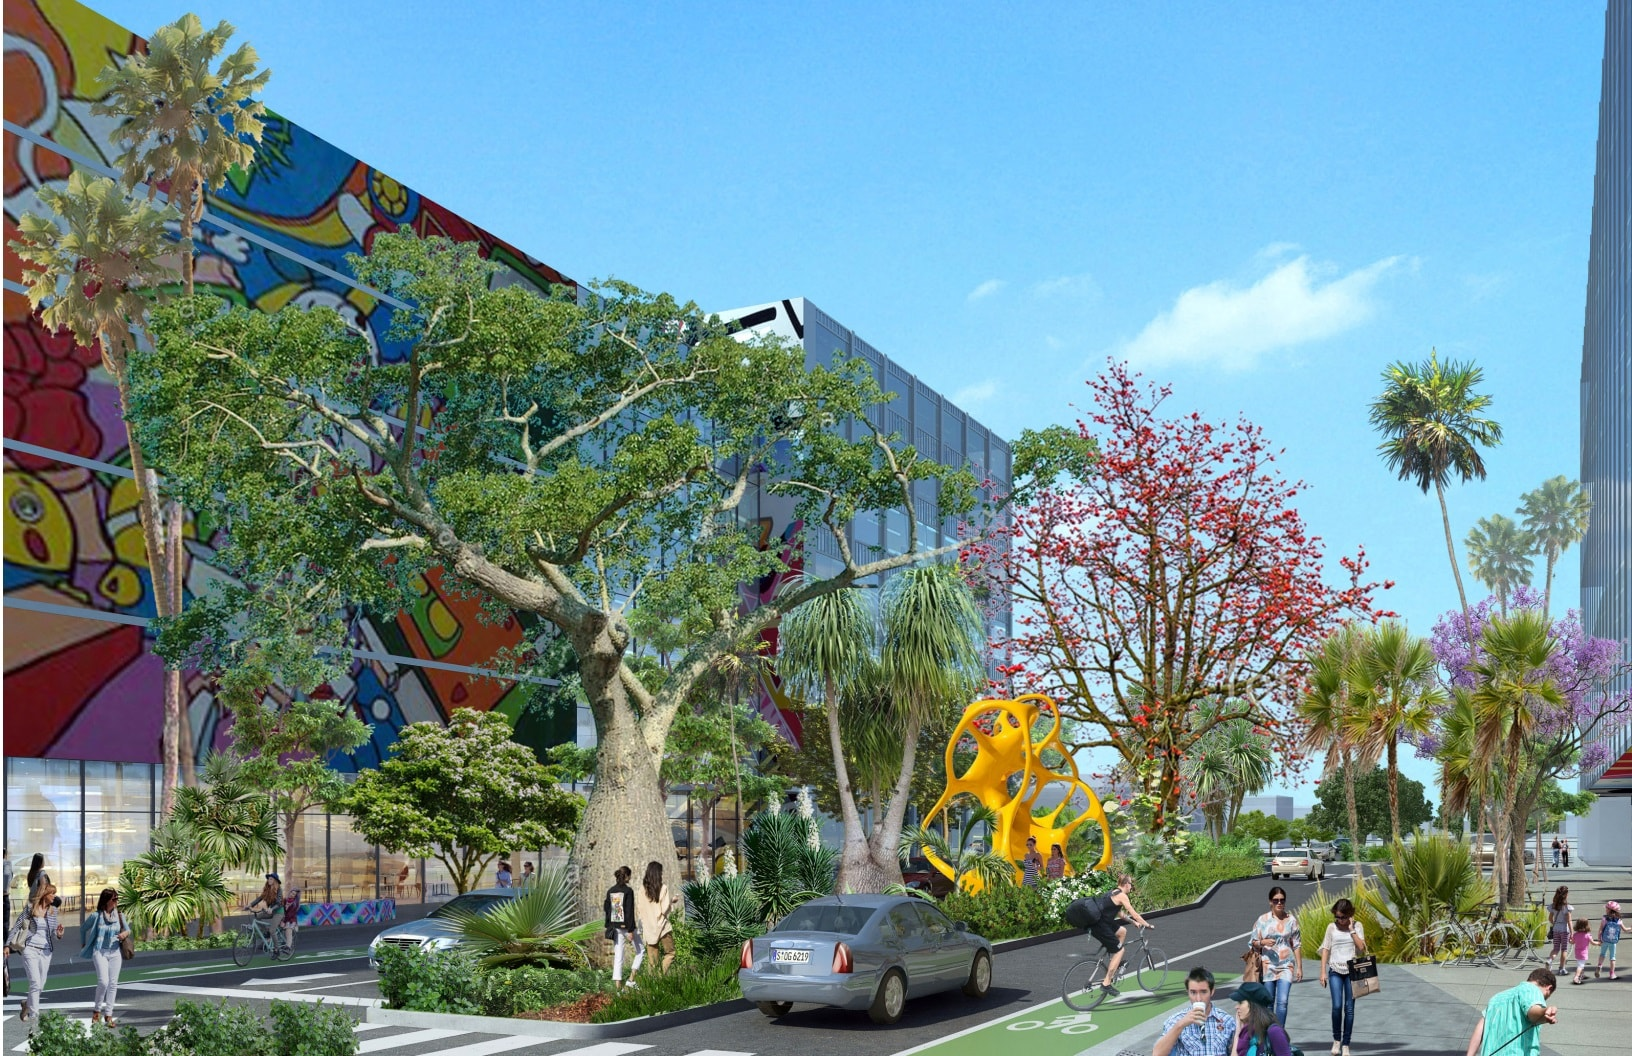 ArquitectonicaGEO's Wynwood Streetscape Master Plan Presented To Wynwood Business Improvement District